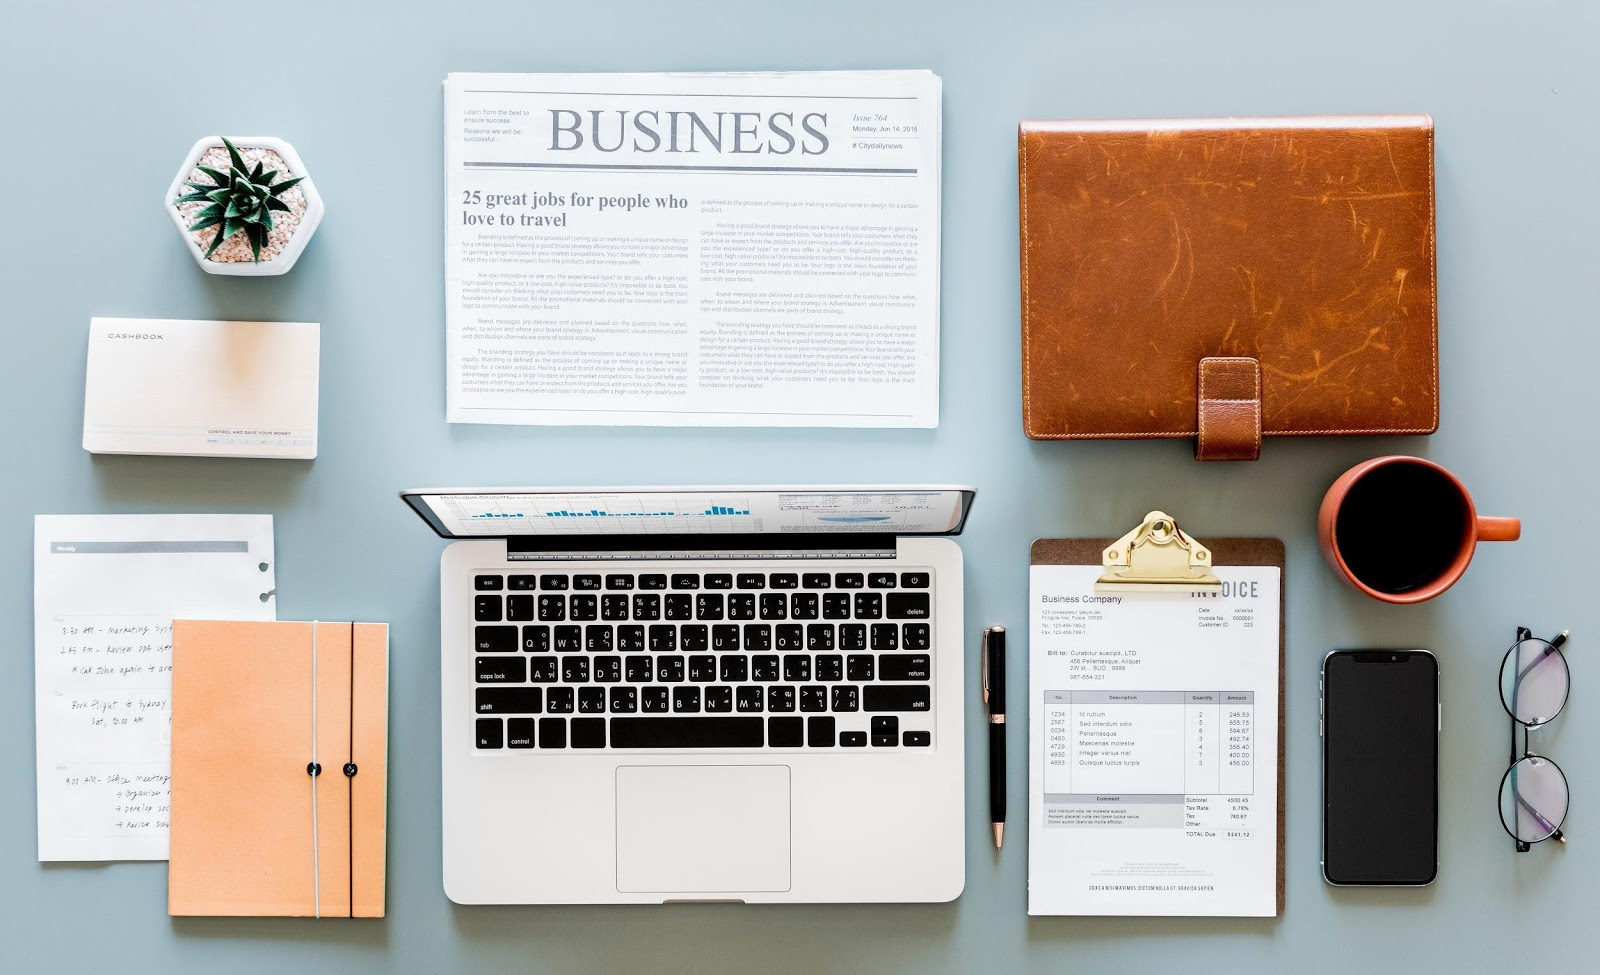 Habits of Highly Organized People That You Should Acquire